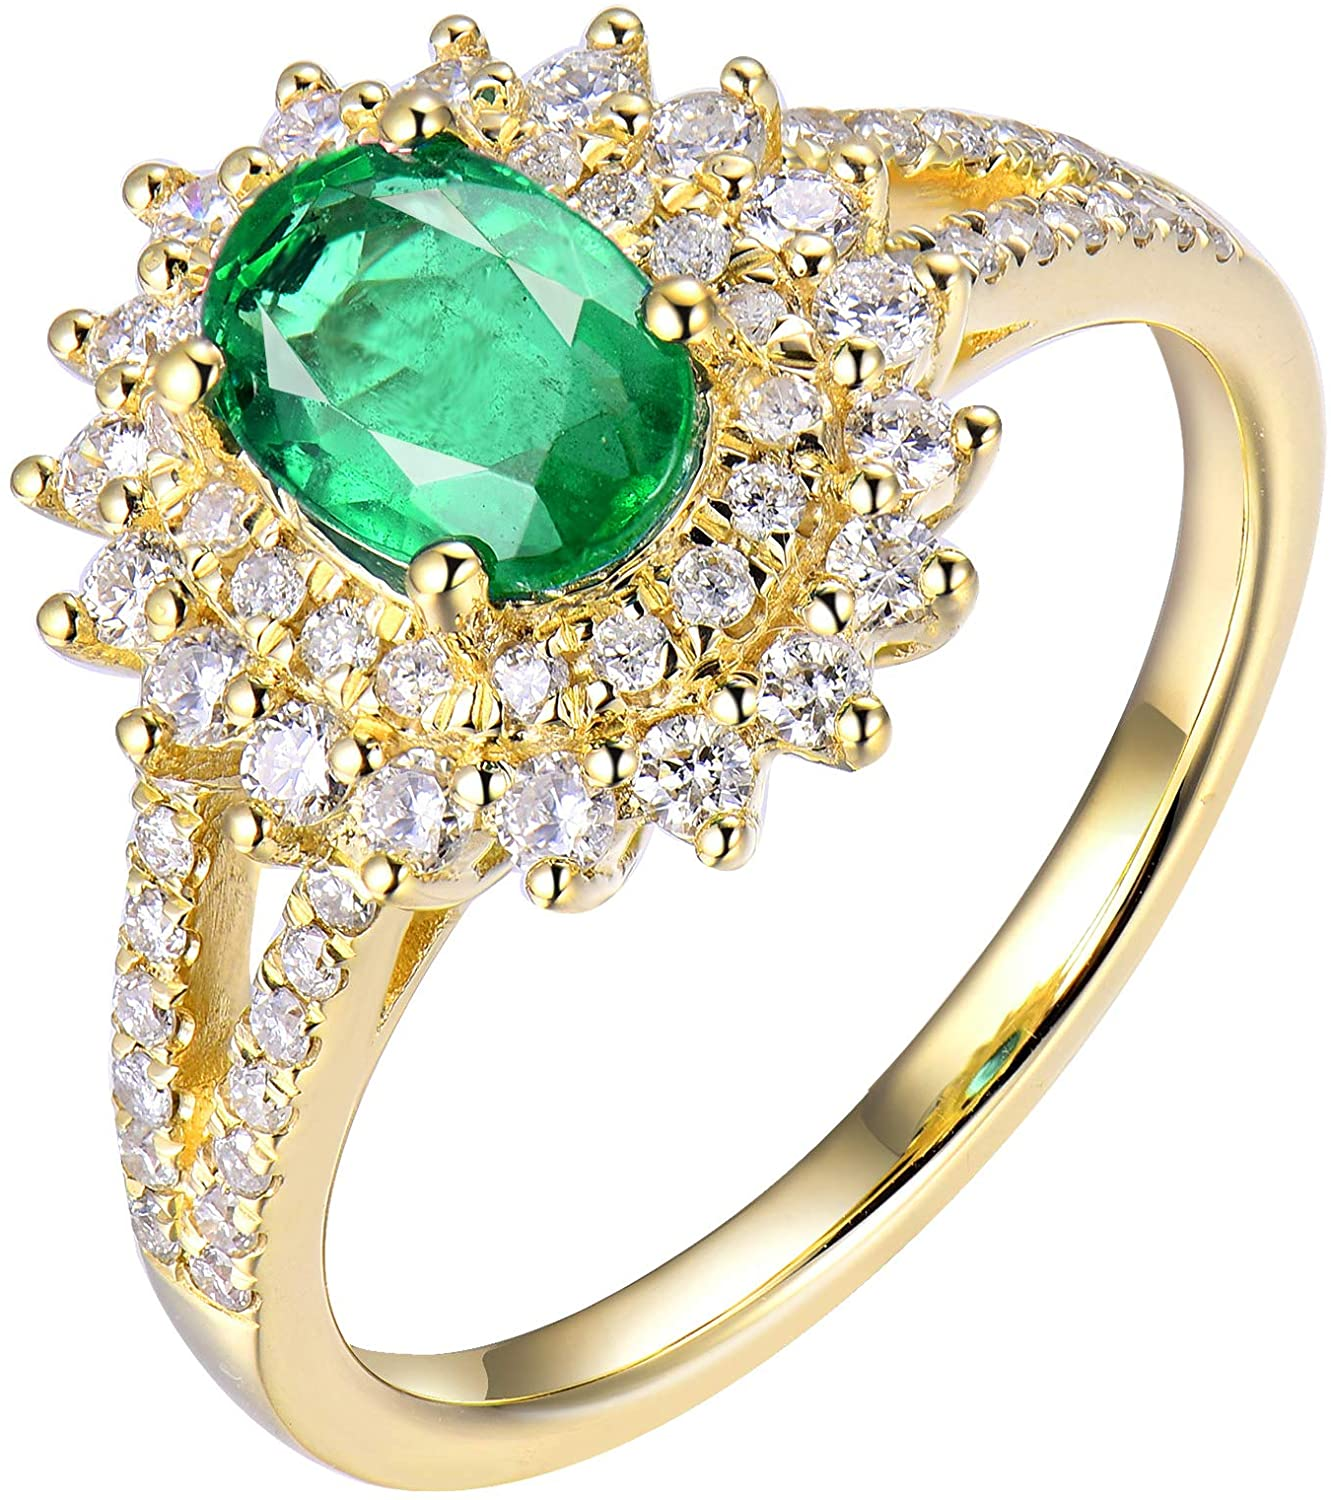 Lanmi Genuine Natural Oval Shape 5x7mm Emerald Engagement Diamond Ring Solid 18K Yellow Gold Ladies Women Rings